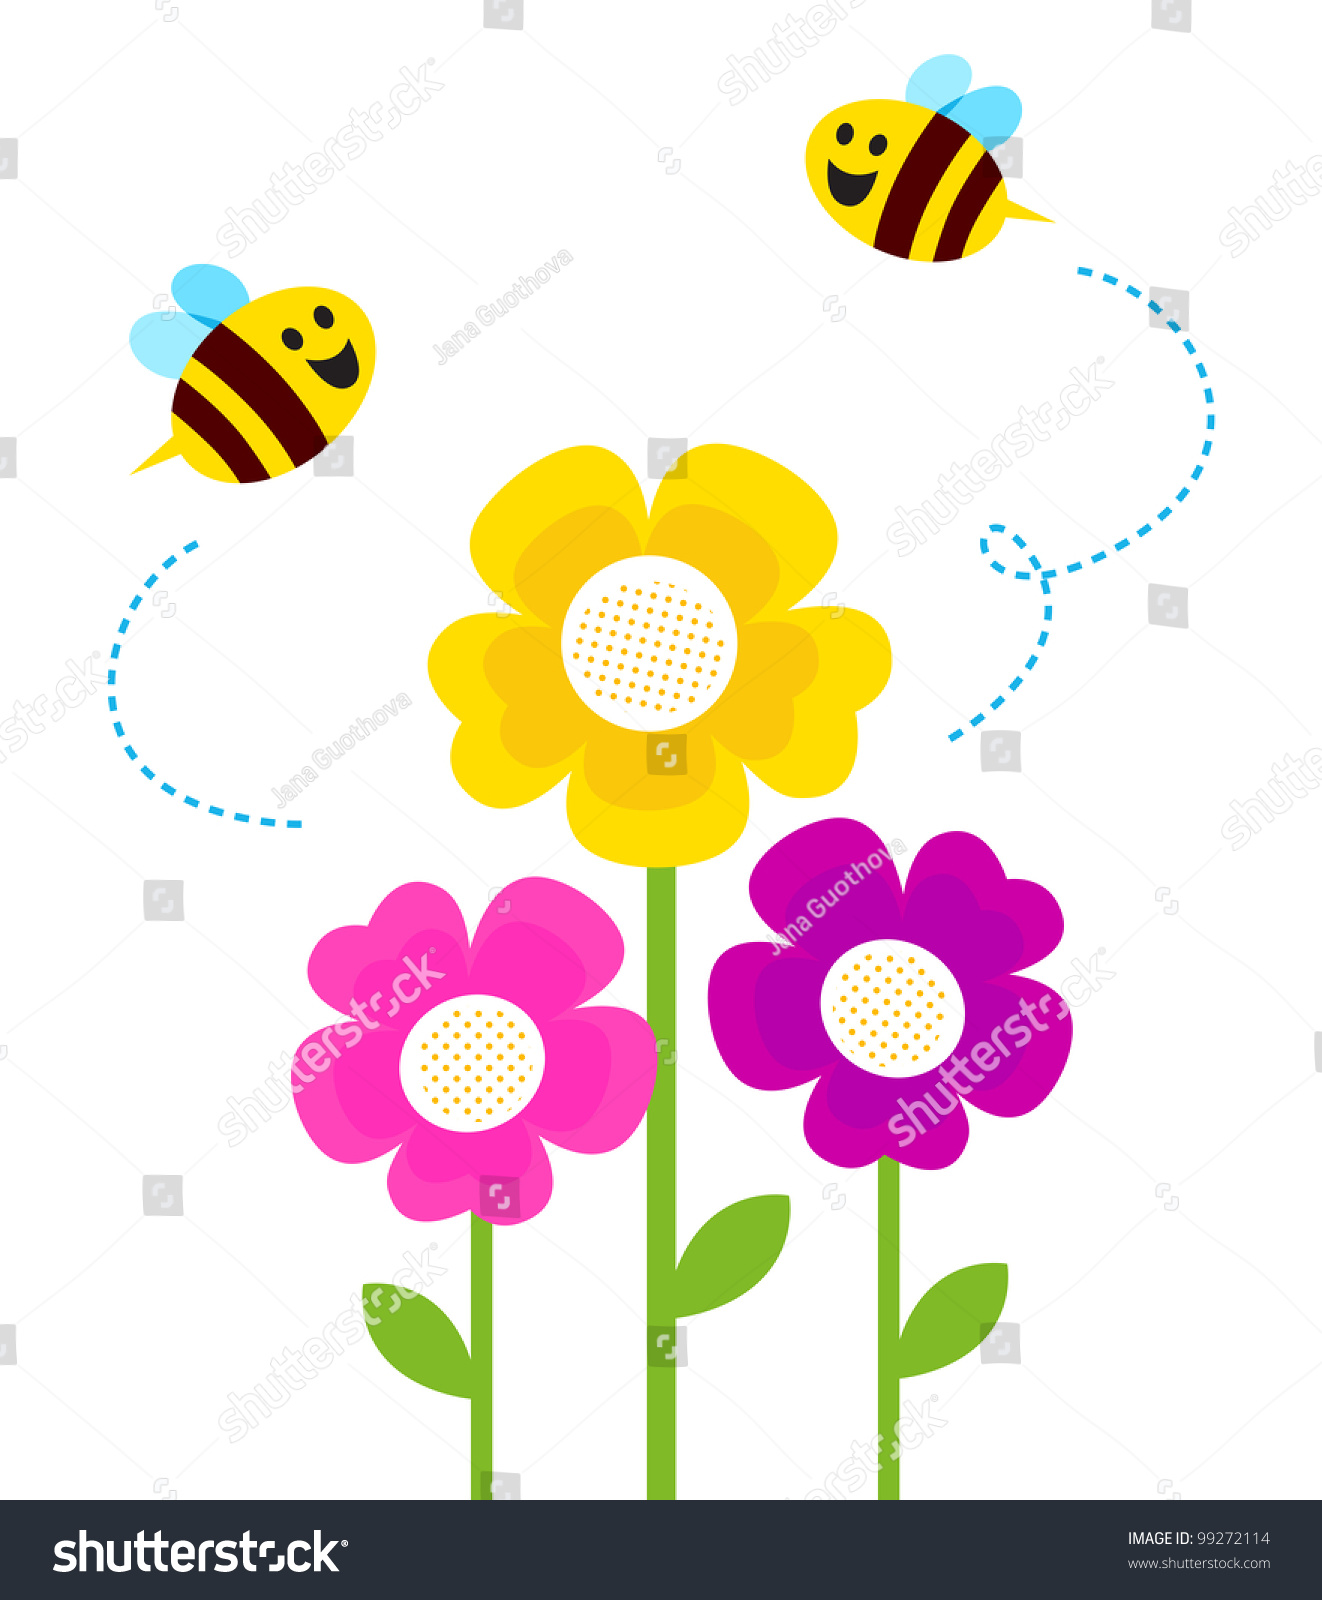 Cute spring flower - Cute Bees Flying Around Spring Flowers Isolated On White